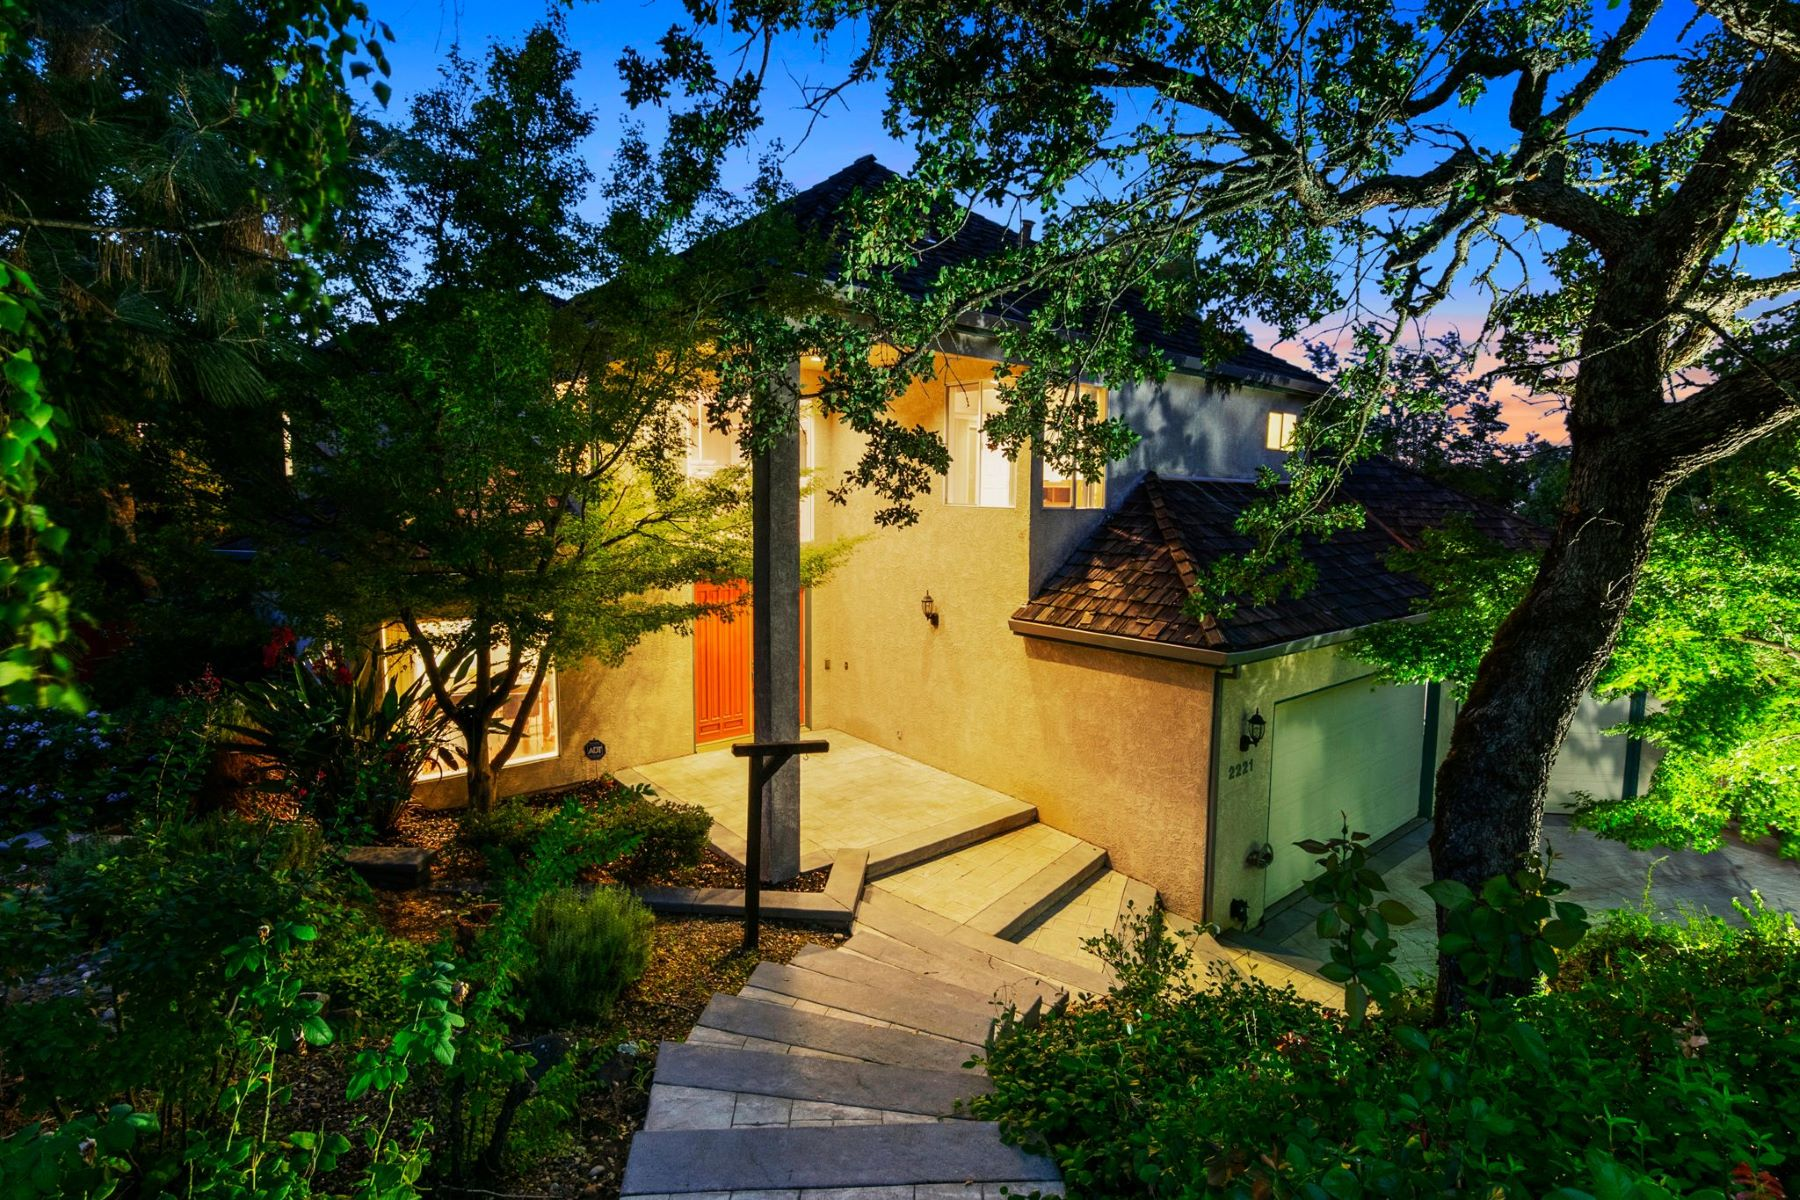 Single Family Homes for Sale at Charming Home in Desirable Governor Village 2221 Tabari Court El Dorado Hills, California 95762 United States